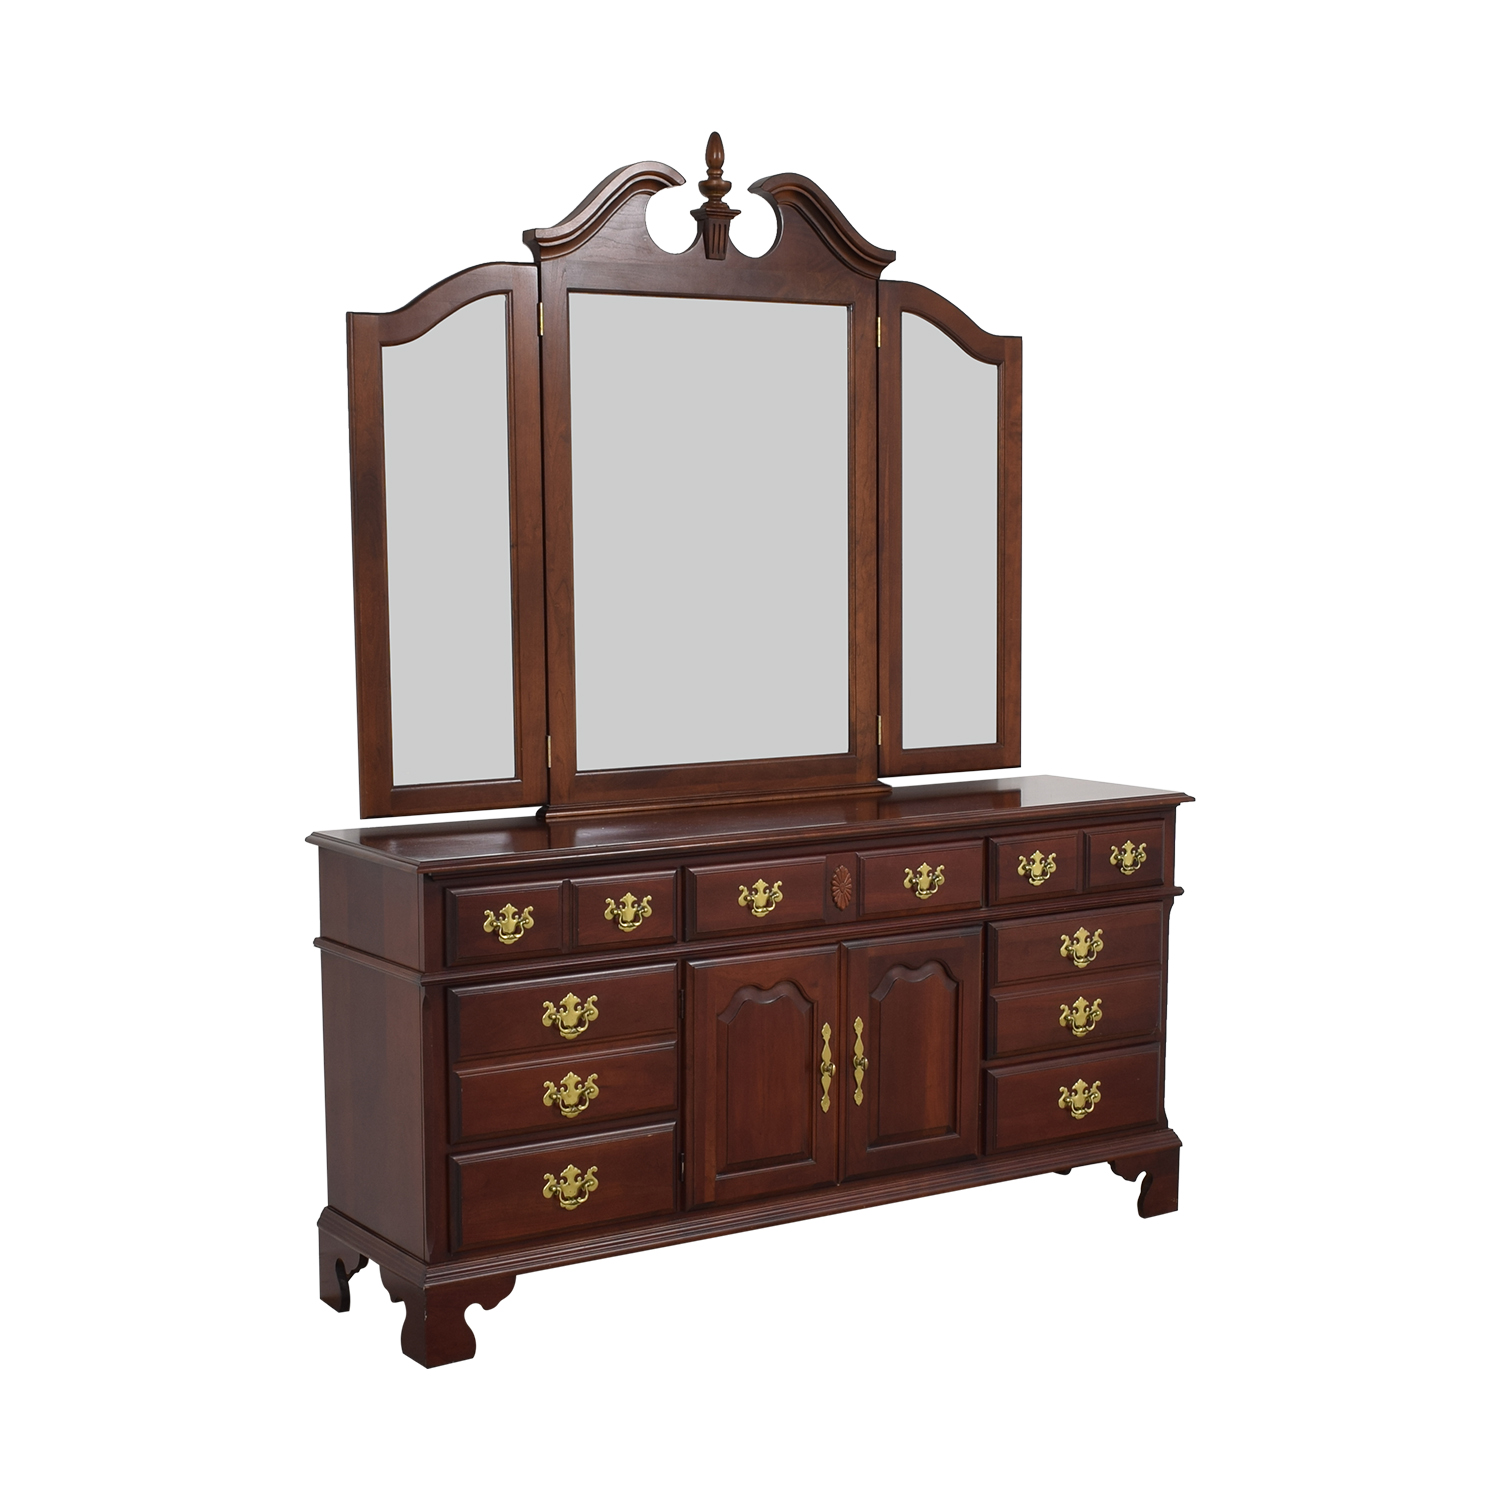 Pennsylvania House Seven Drawer Dresser with Cabinets / Storage